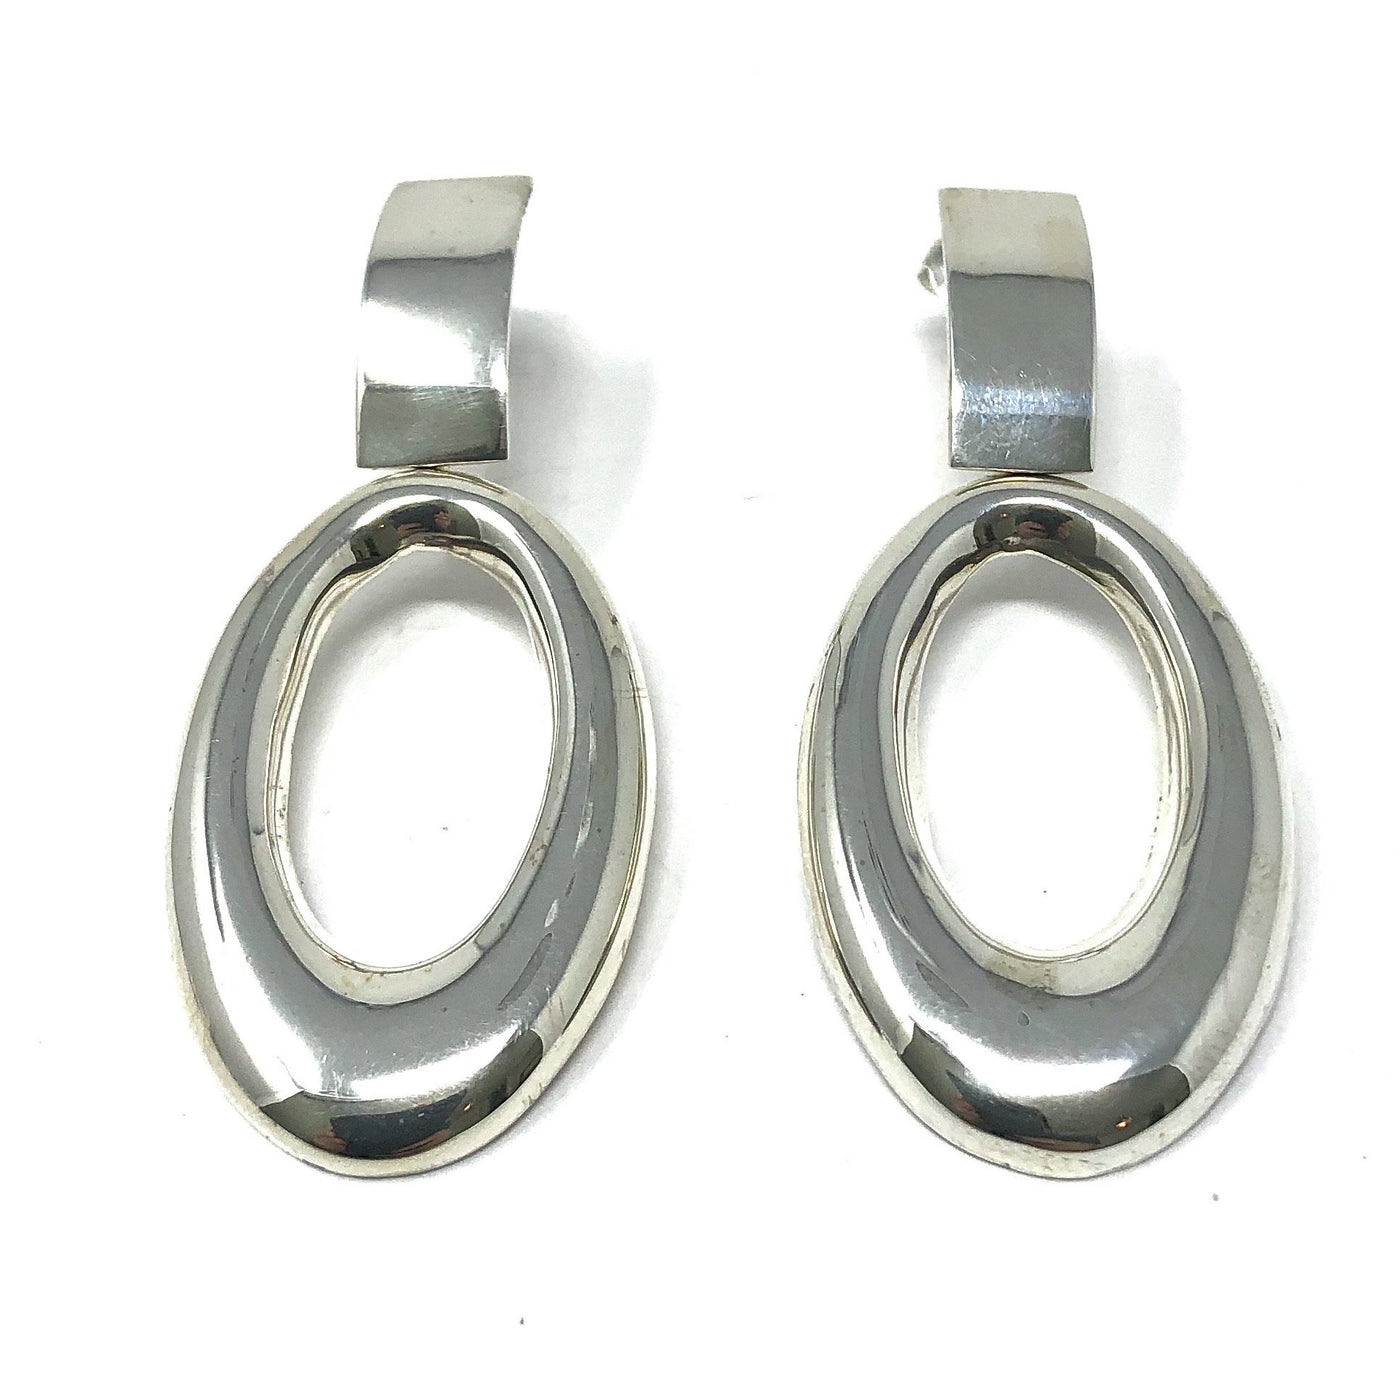 FM 1-0401-3 DOOR KNOCKER EARRINGS